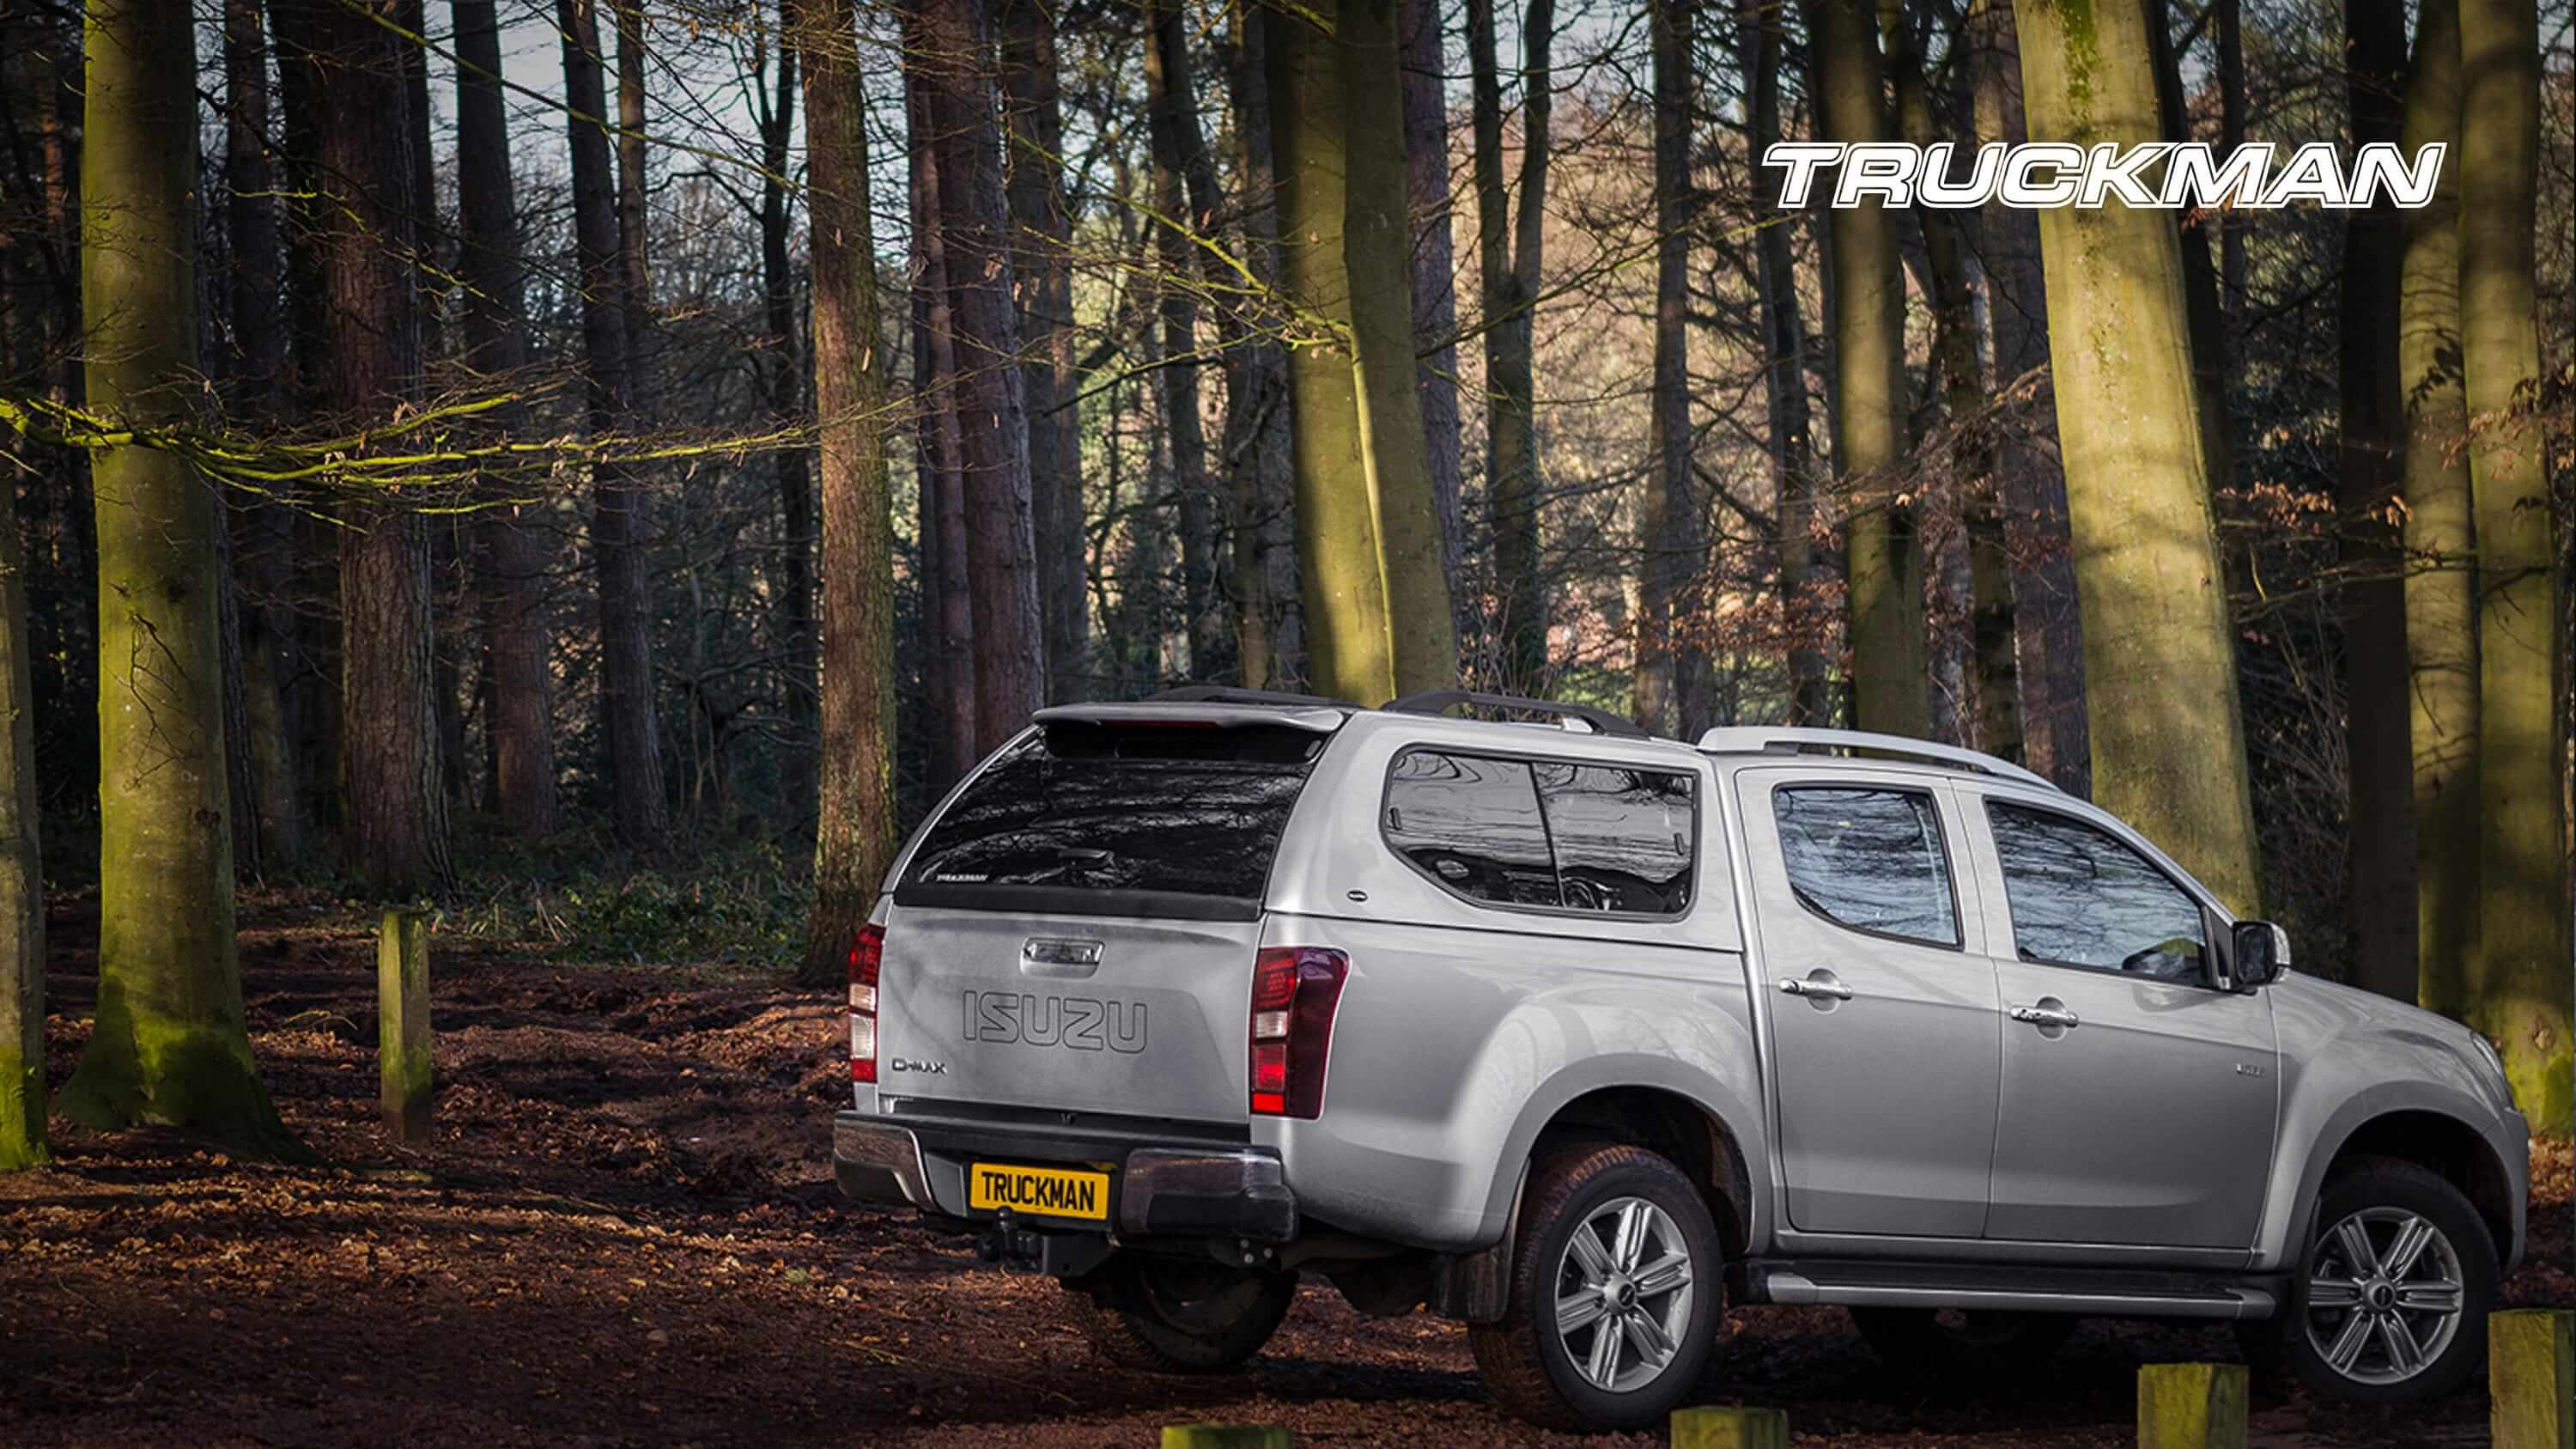 Isuzu D-Max Double Cab Fitted With a Truckman GLS Hardtop Canopy (Landscape)